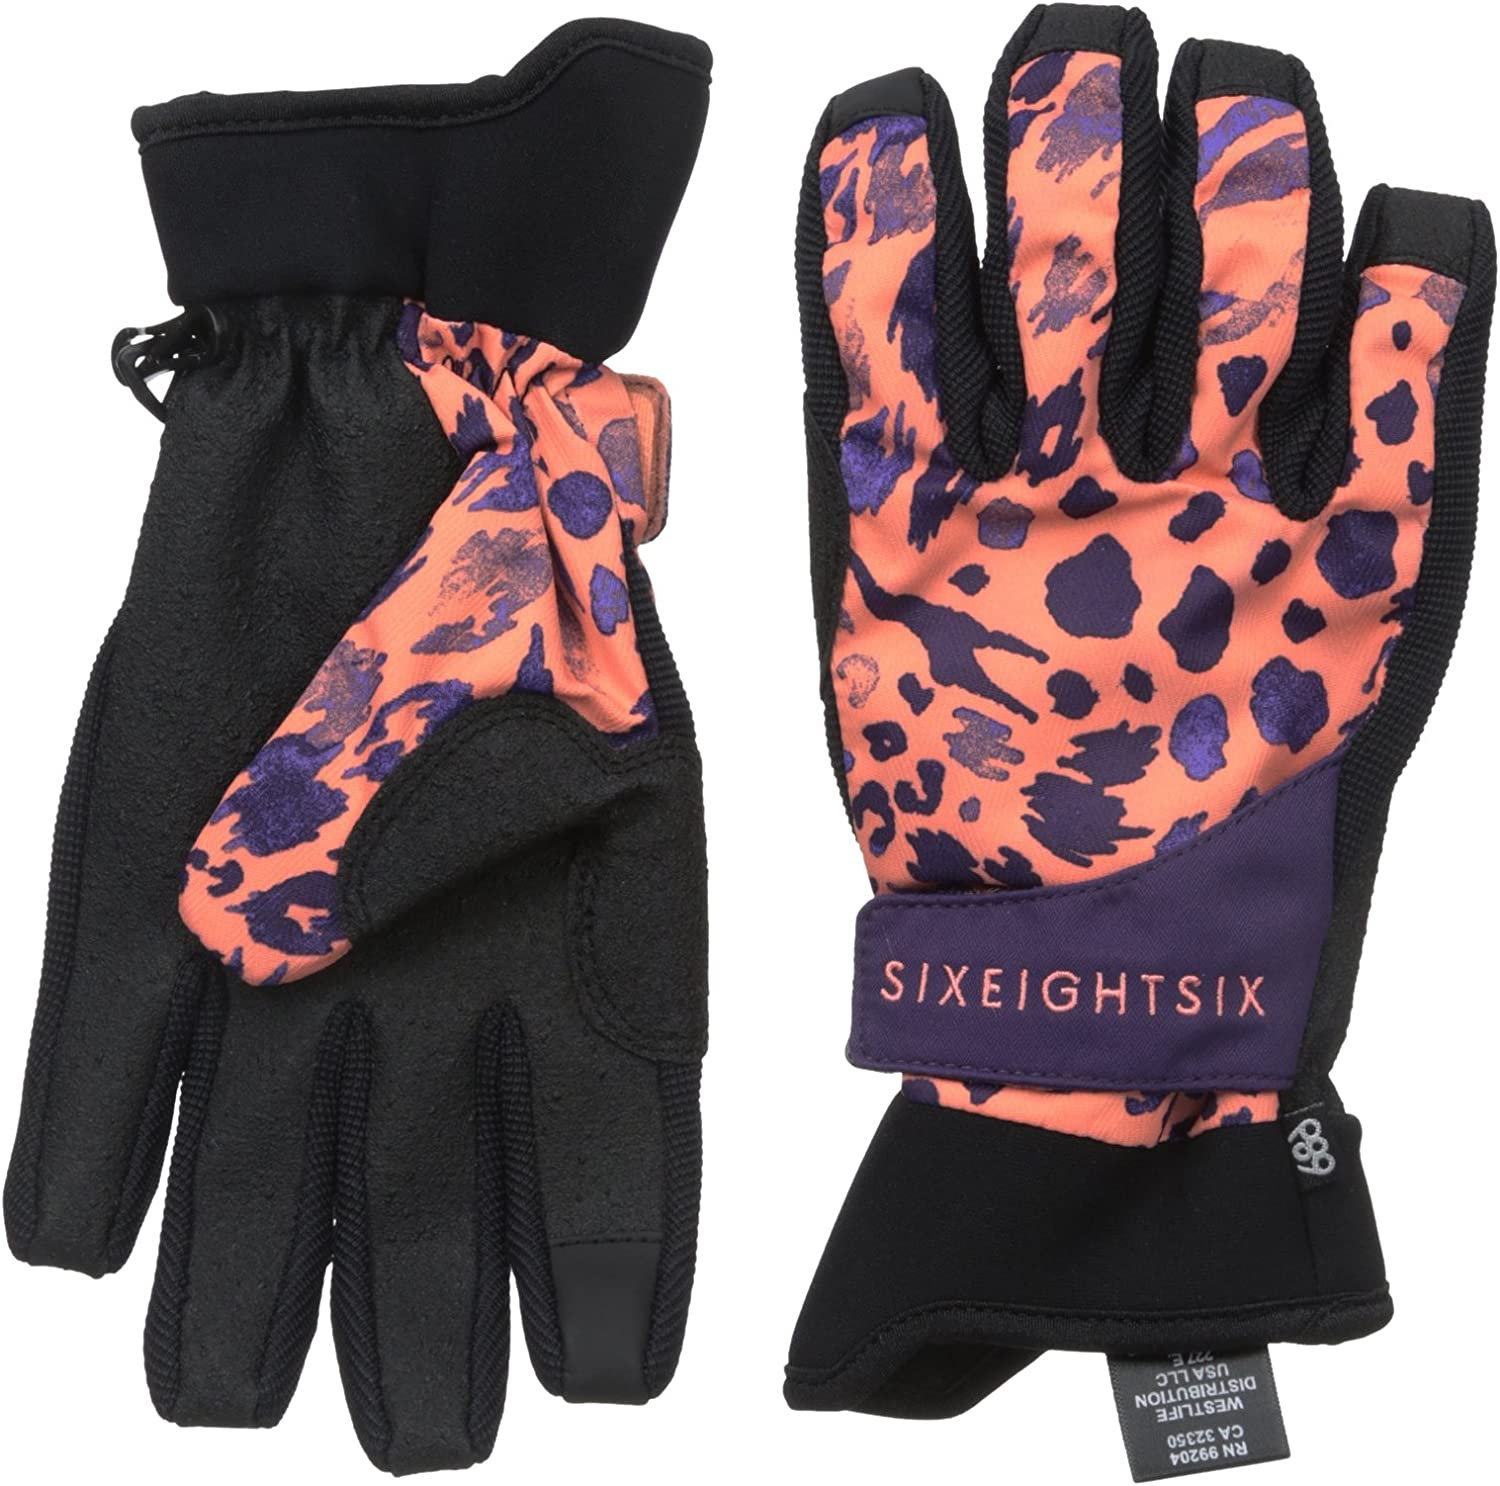 Our Max 68% OFF shop most popular 686 Women's Rhythm Glove Pipe